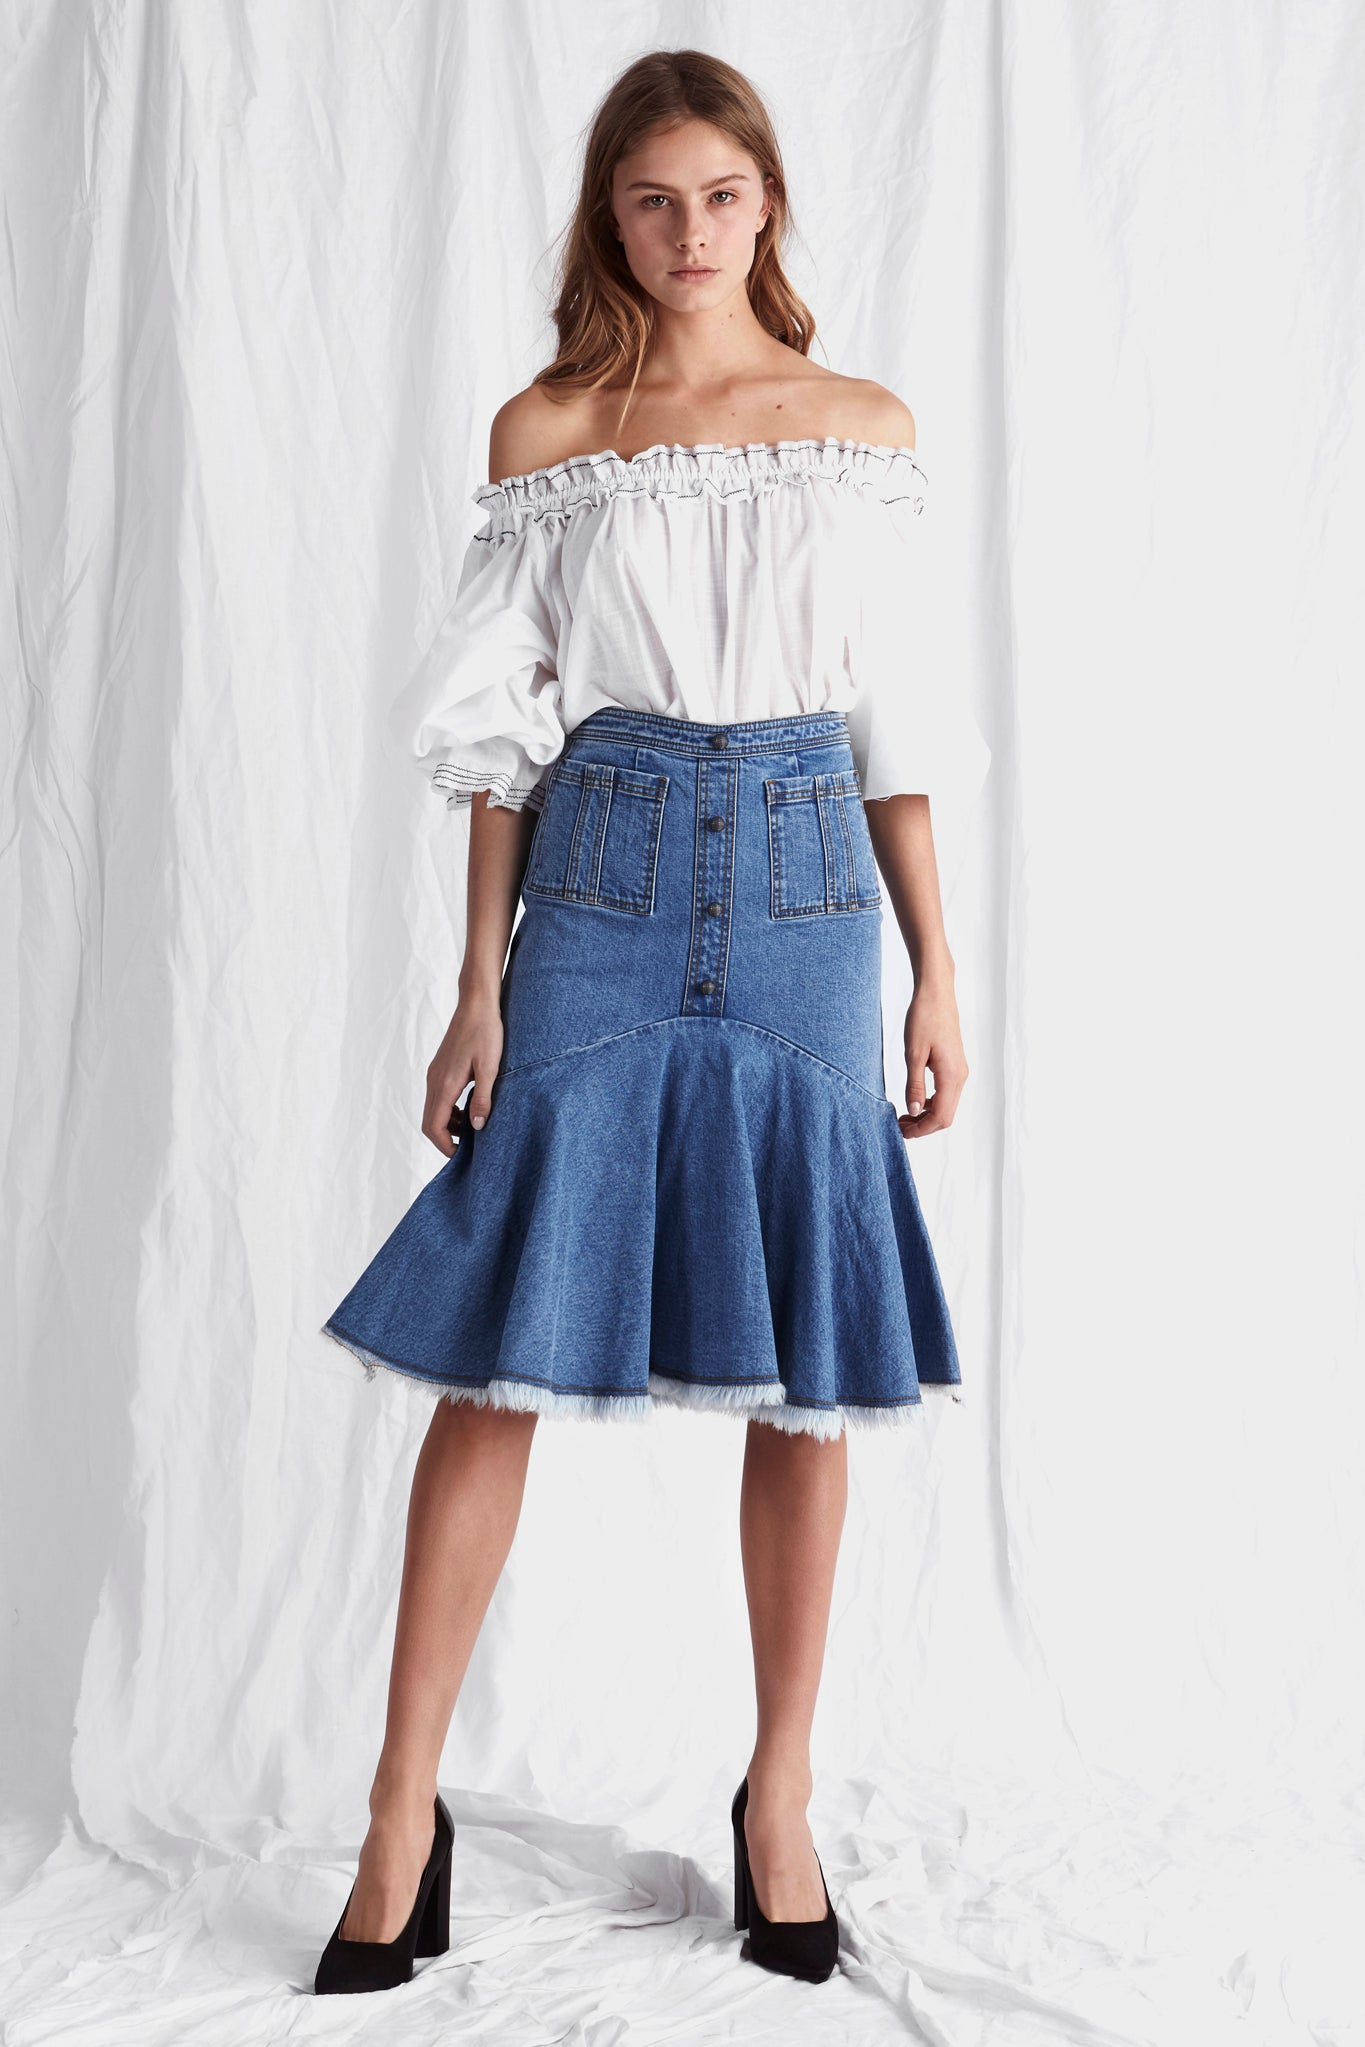 Phelps Midi Skirt Outfit View